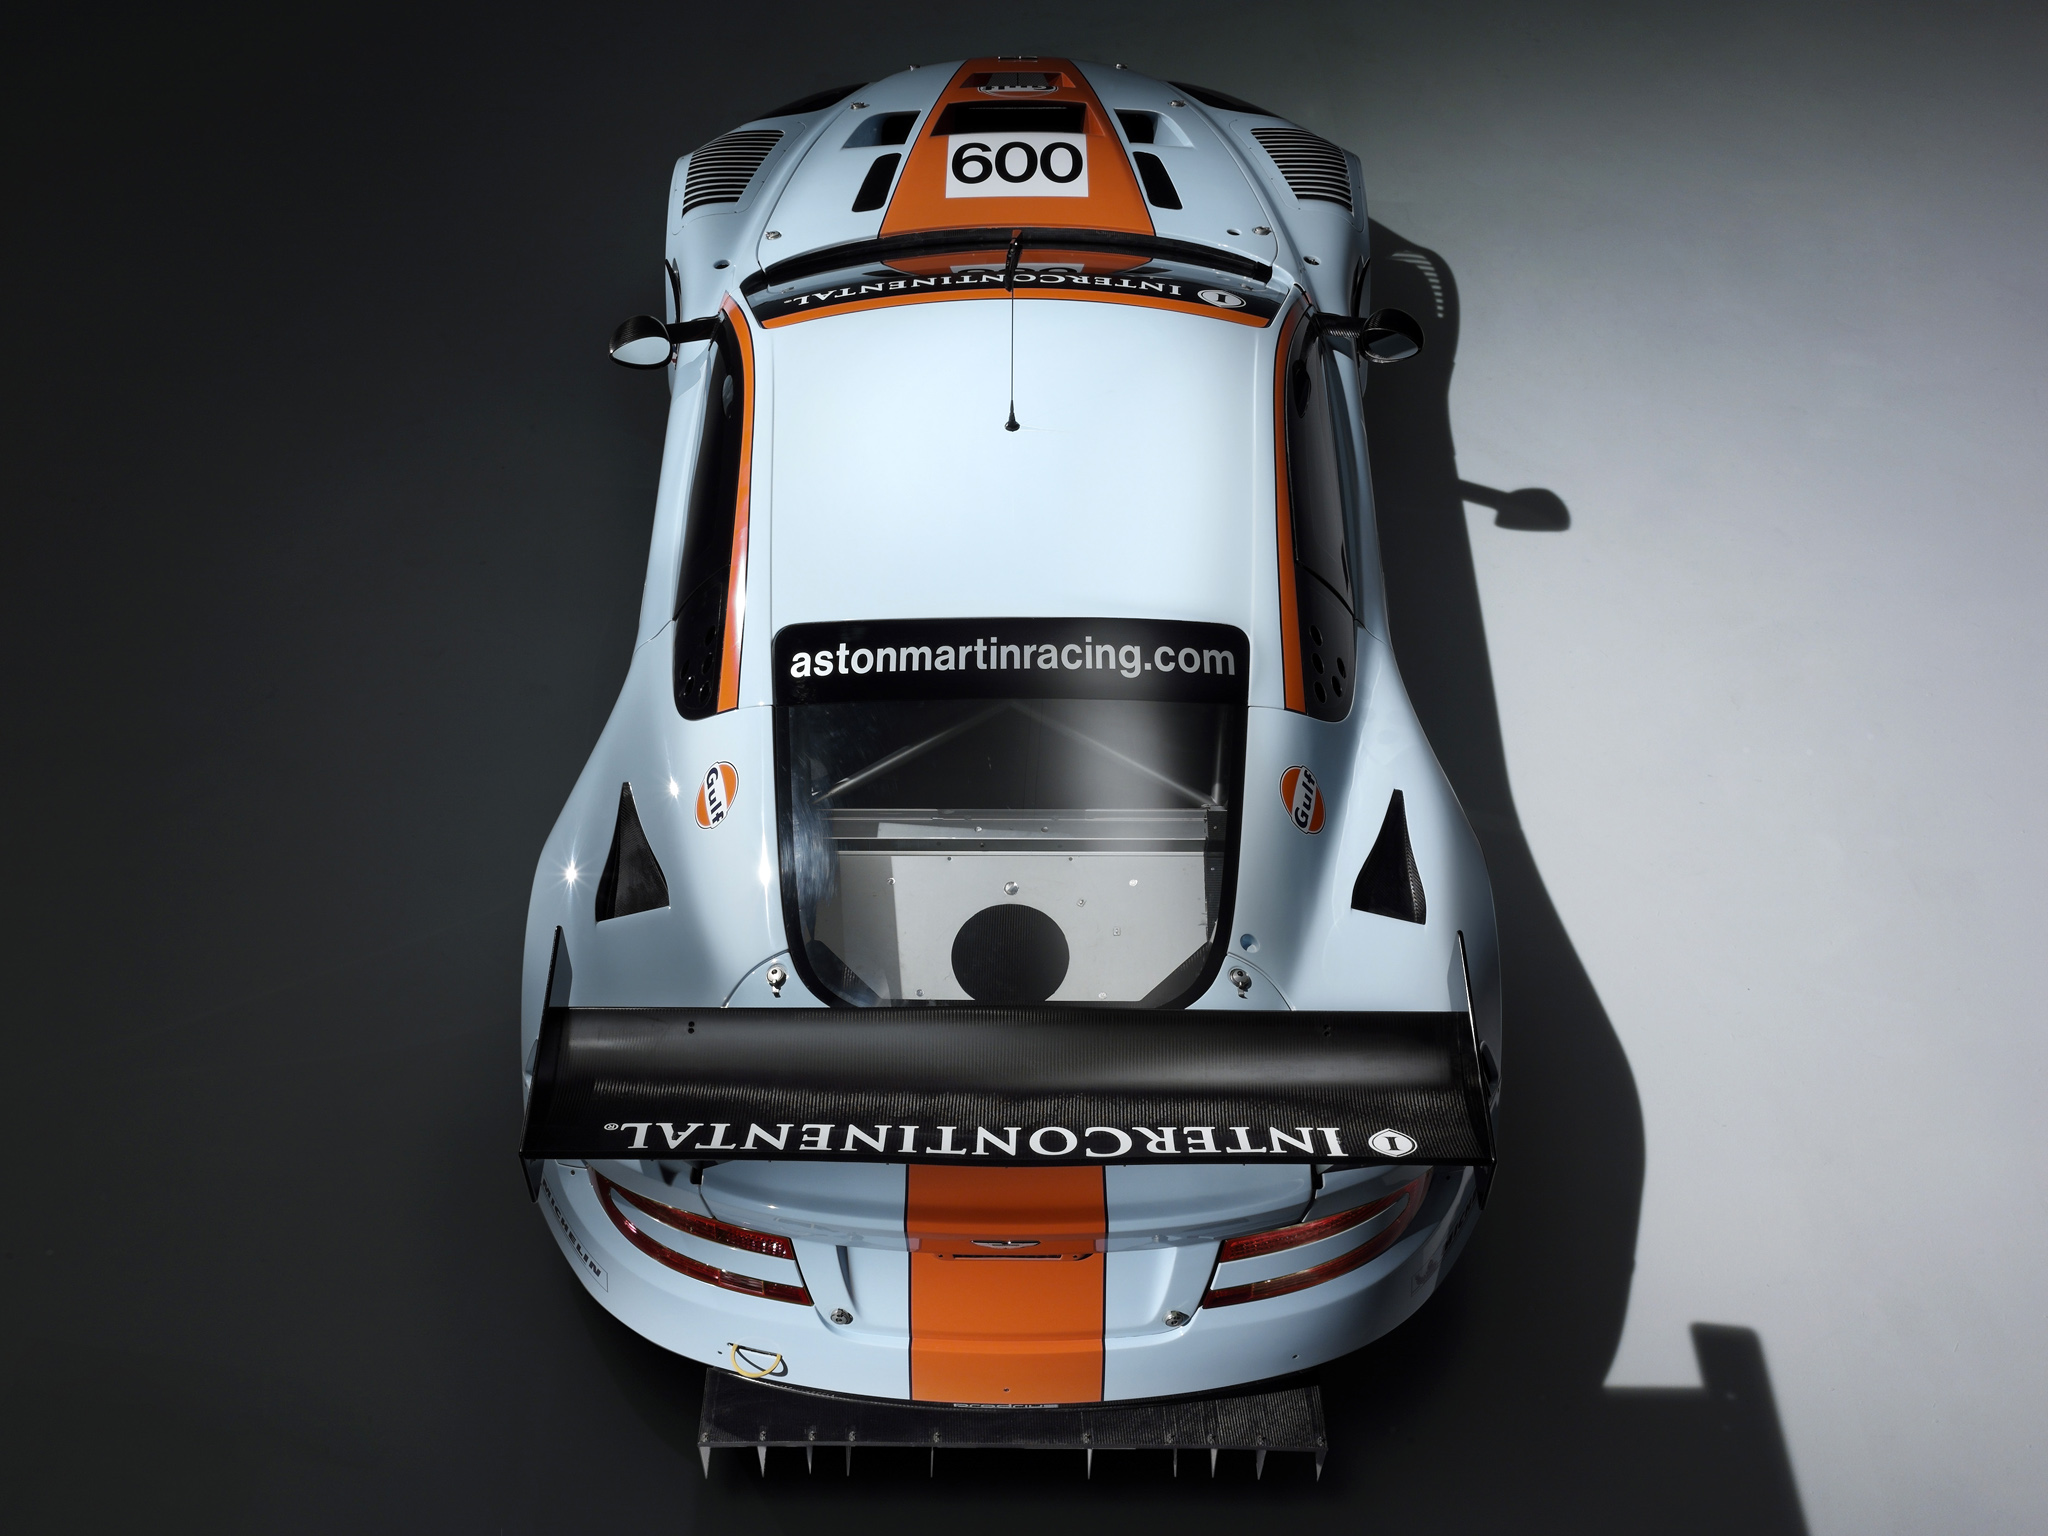 Img11614 further 2008 Aston Martin DBR9 Gulf Oil Livery race racing g moreover 2014 Vantage Models furthermore 2014 Aston Martin Dbs For Sale further 28135. on 2013 aston martin